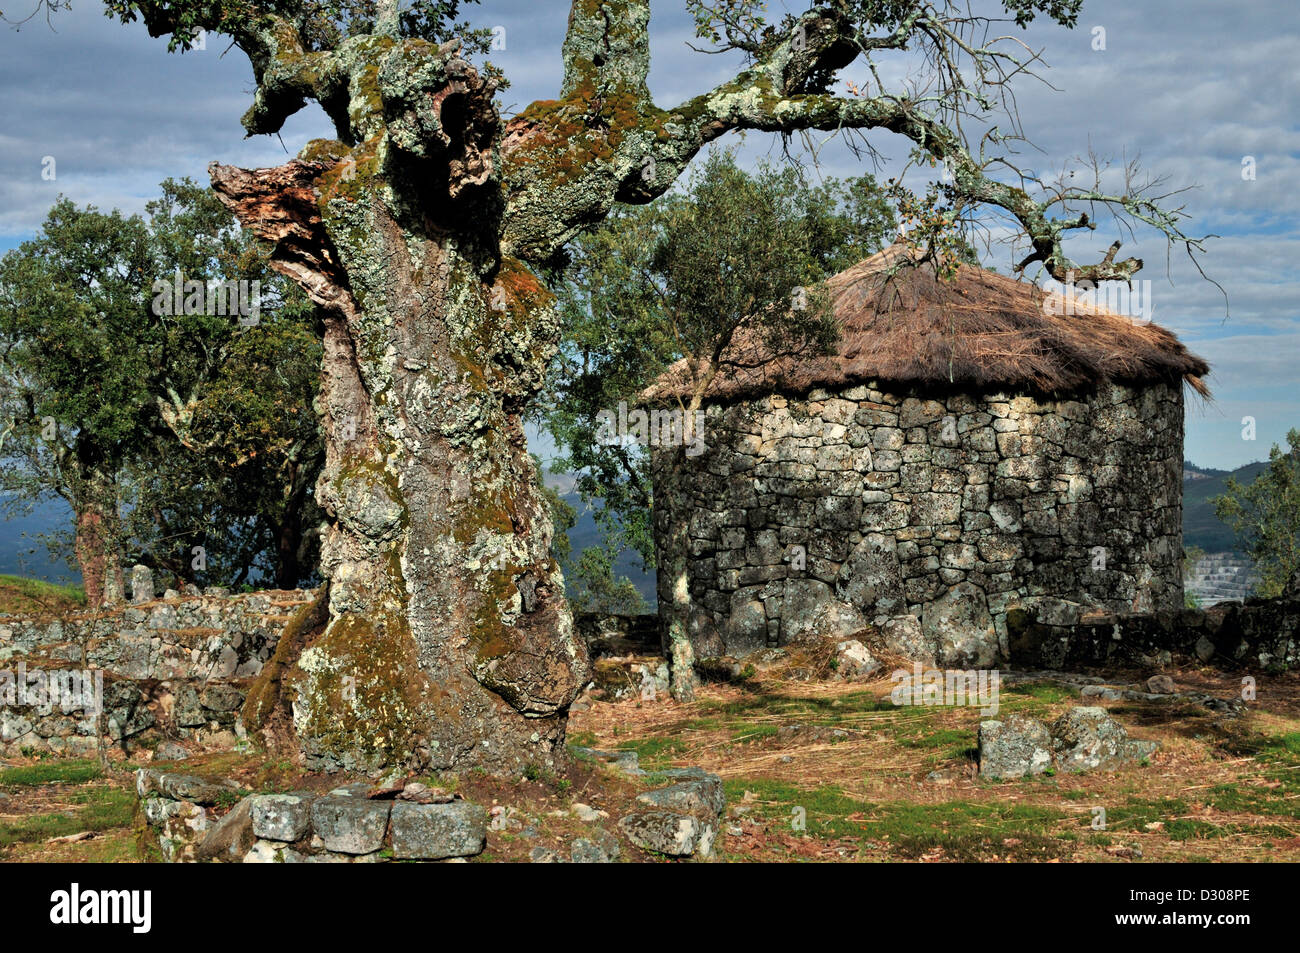 Portugal, Minho: Celtic iberian round house and thousand year old cork oak in Citania de Briteiros - Stock Image